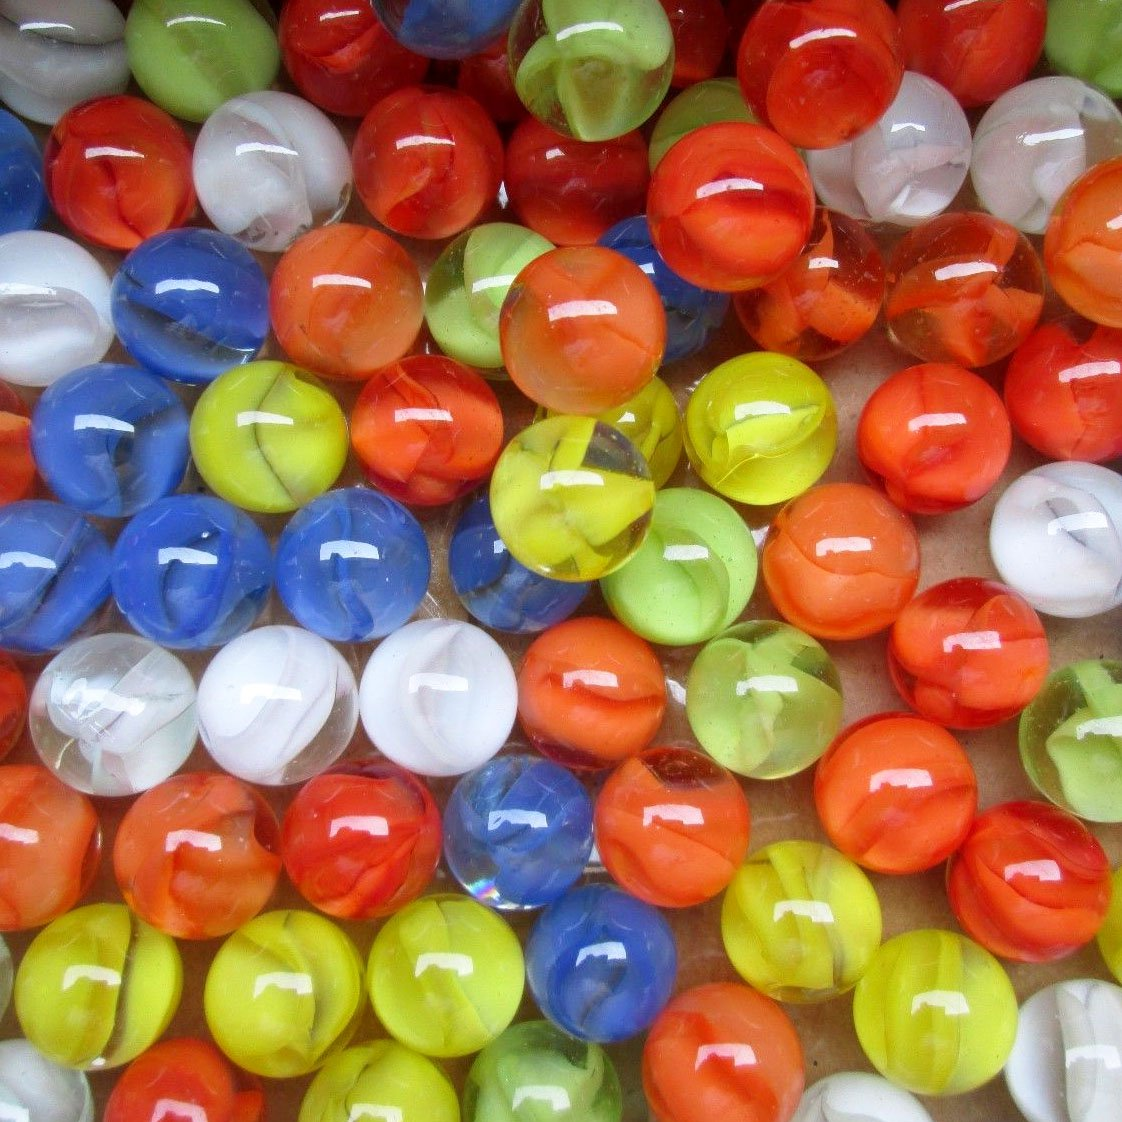 """Unique & Custom {9/16'' Inch} Approx 2 Pound Set of Small """"Round"""" Clear Marbles Made of Glass for Filling Vases, Games & Decor w/ Classic Nostalgic Cats Eye Design [Orange, Blue, Yellow, White & Green]"""